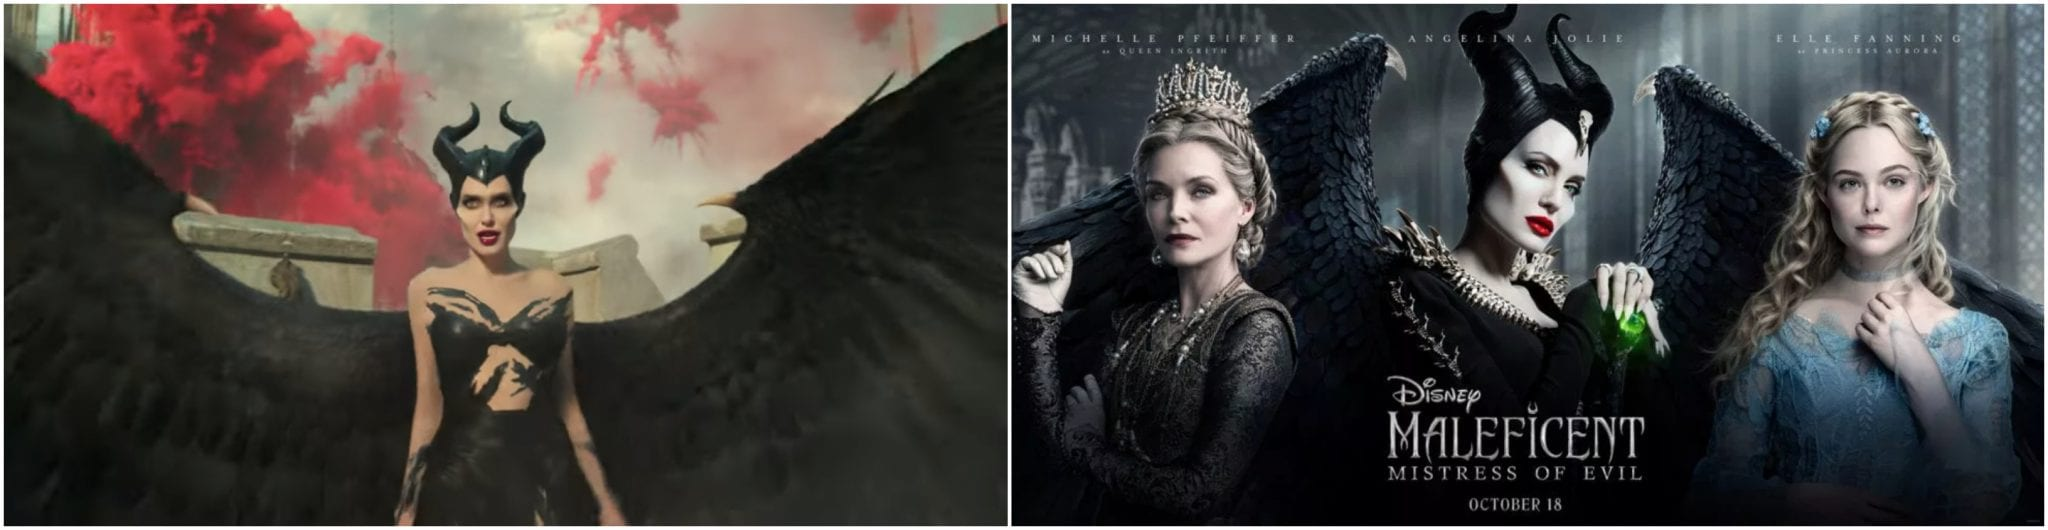 Maleficent Is Coming Back To The Big Screens As The Mistress